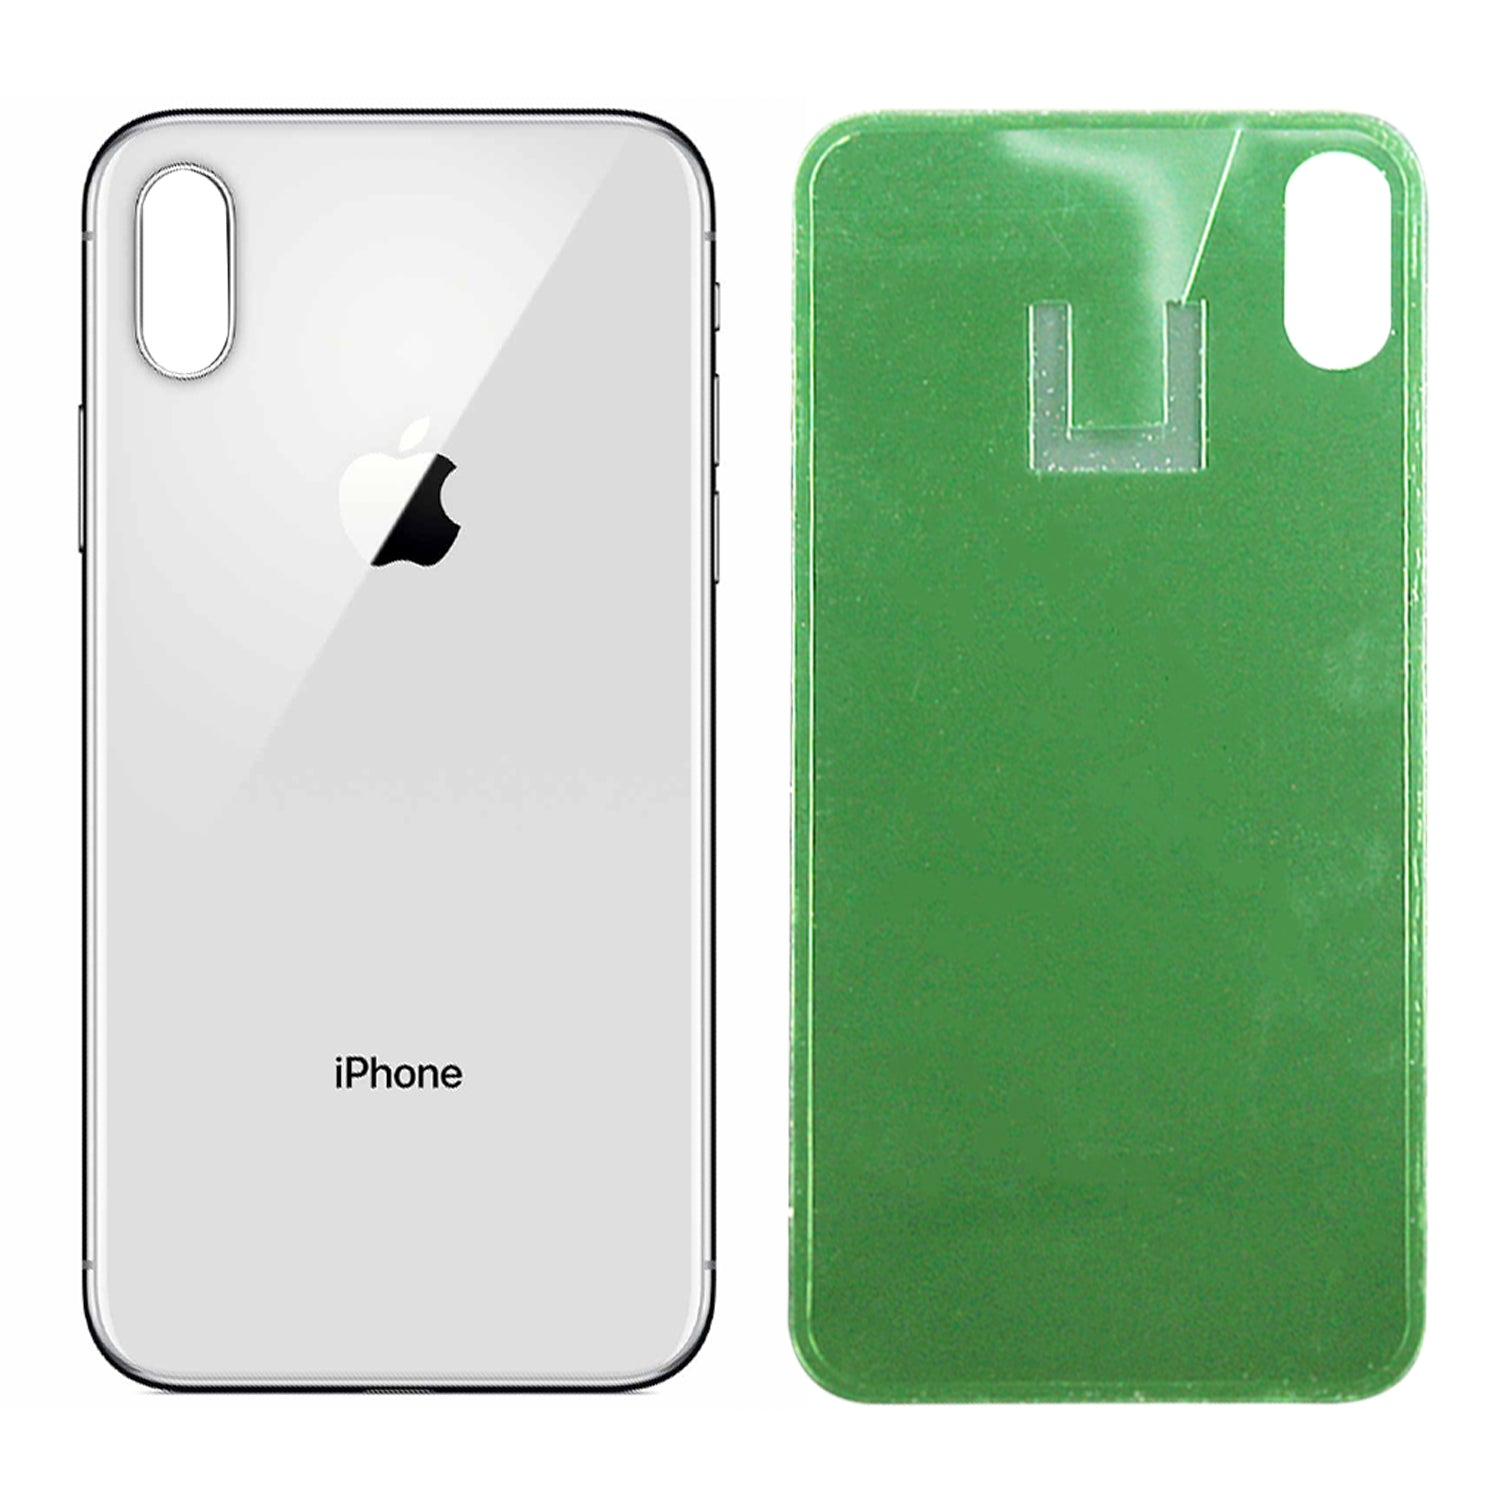 Silver Apple Iphone X Back Glass Cover Oem Battery Door Replacement